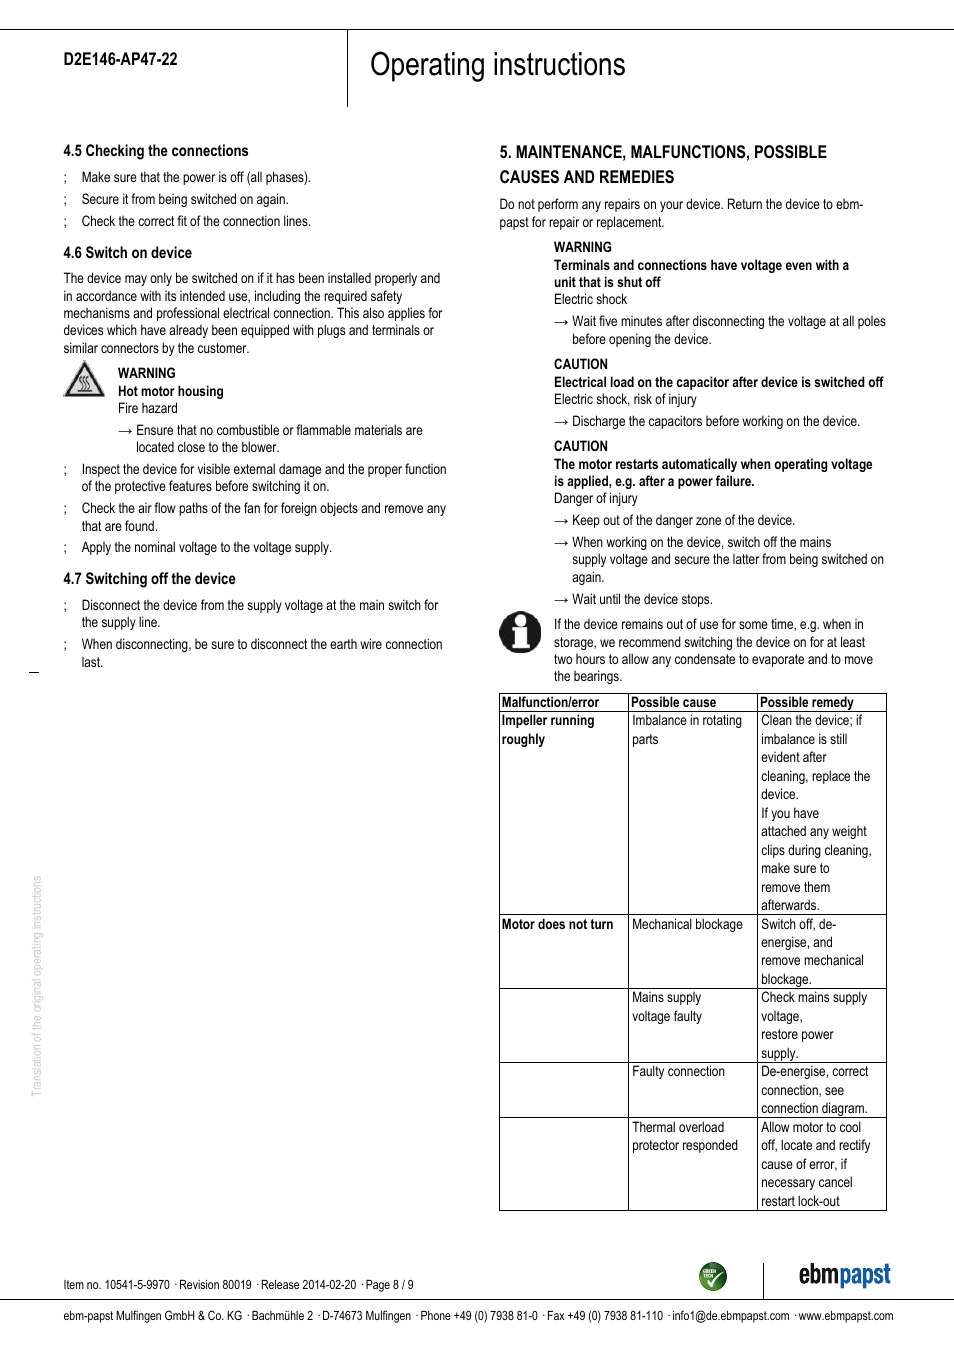 hight resolution of operating instructions ebm papst d2e146 ap47 22 user manual page 8